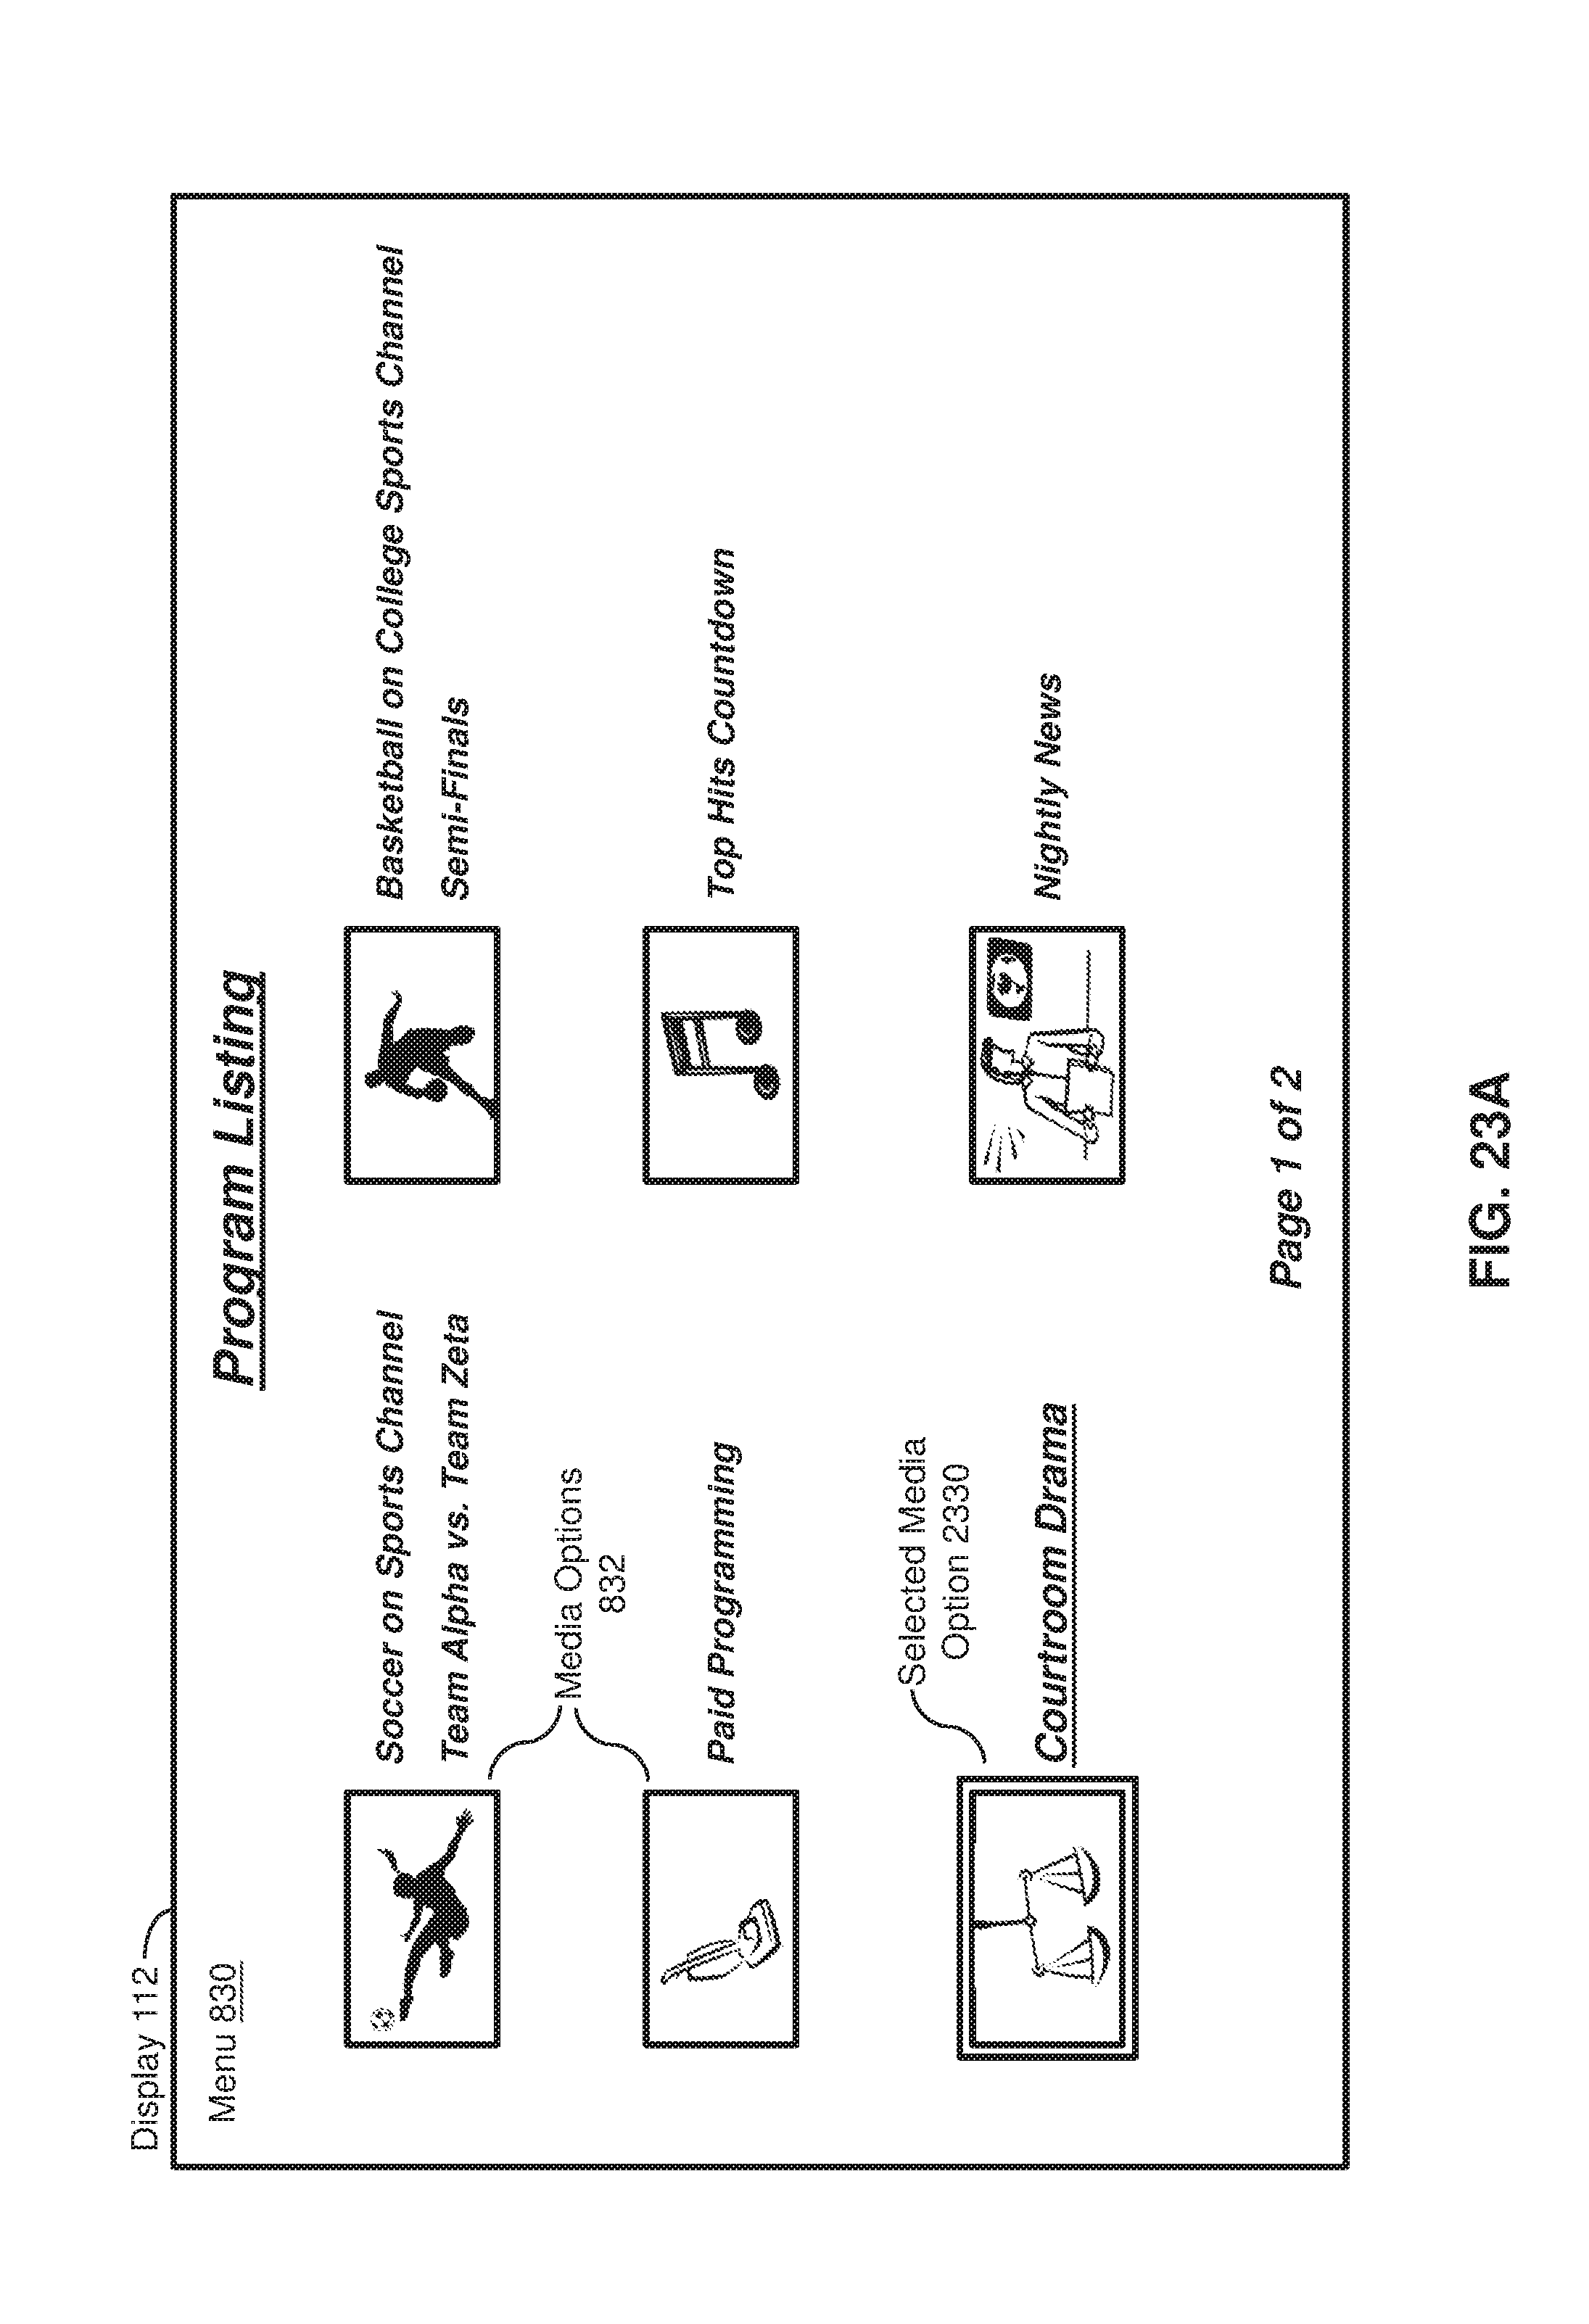 Us9668024b2 Intelligent Automated Assistant For Tv User Kenwood Car Audio Touch Screen In Addition Monte Carlo Wiring Diagram Interactions Google Patents